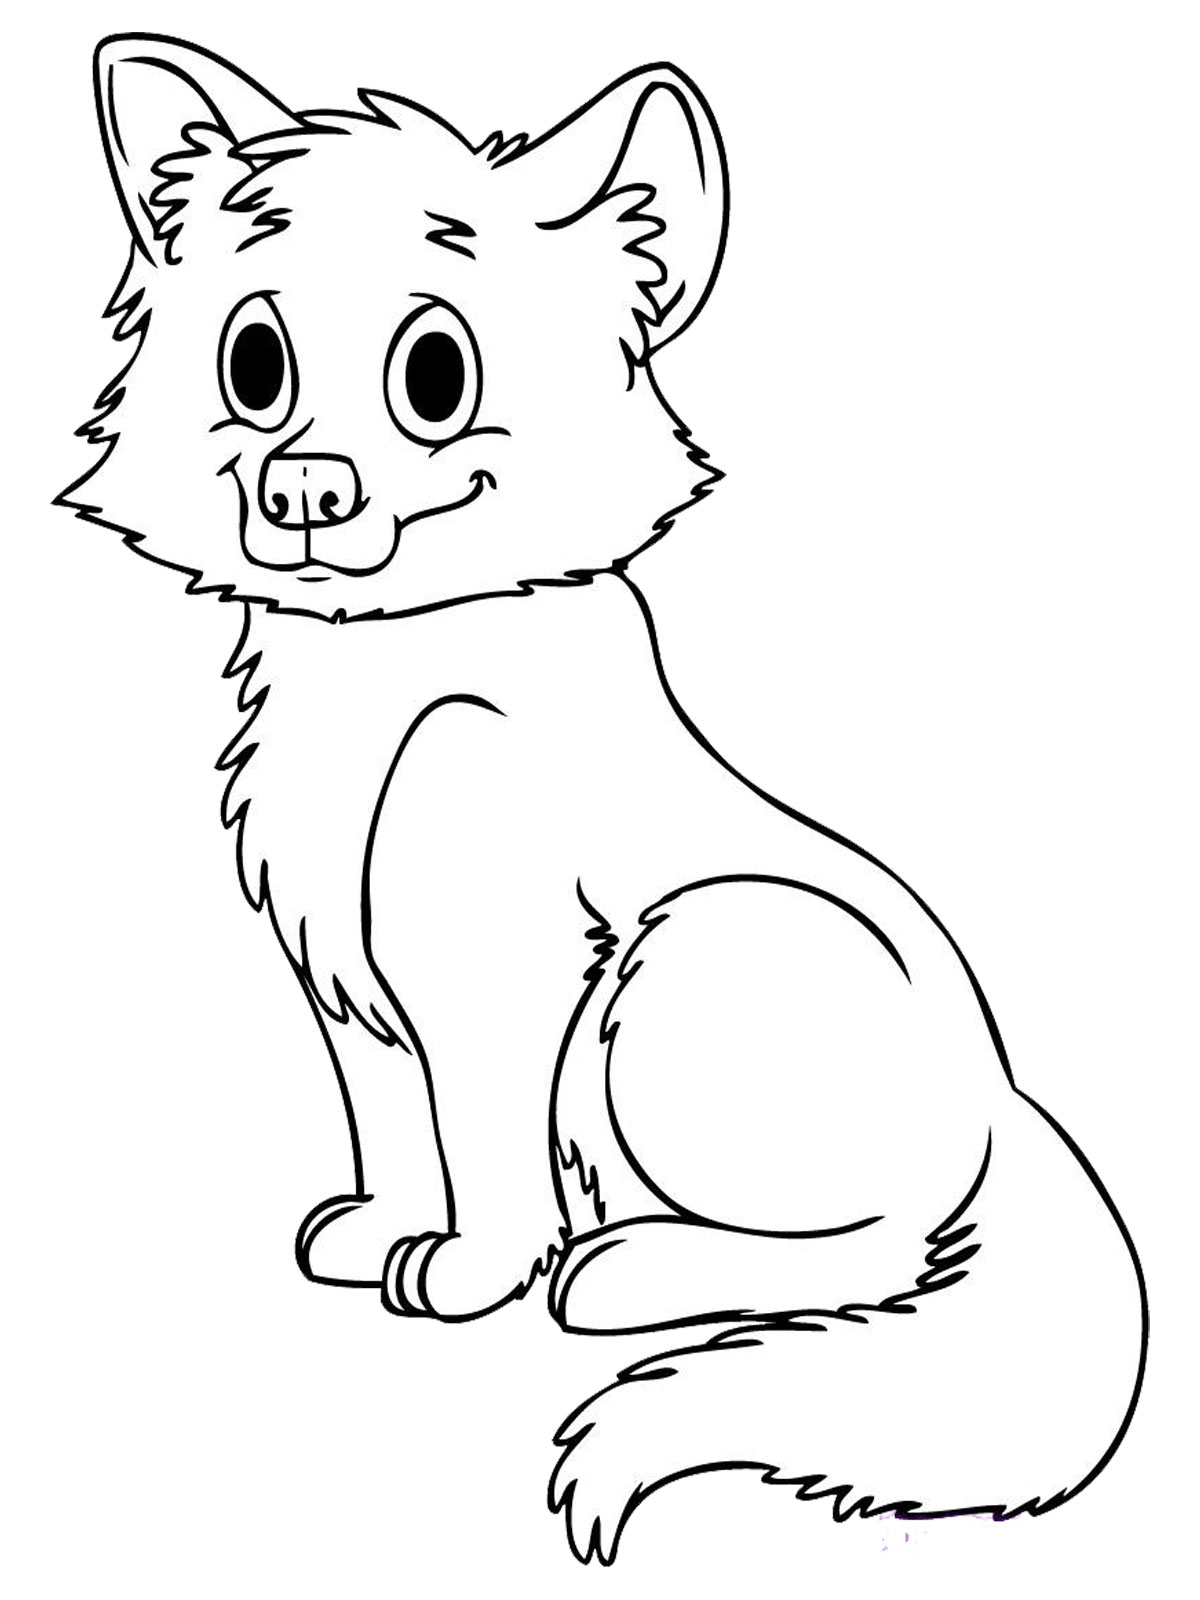 Fox Coloring Sheet : coloring, sheet, Printable, Coloring, Pages